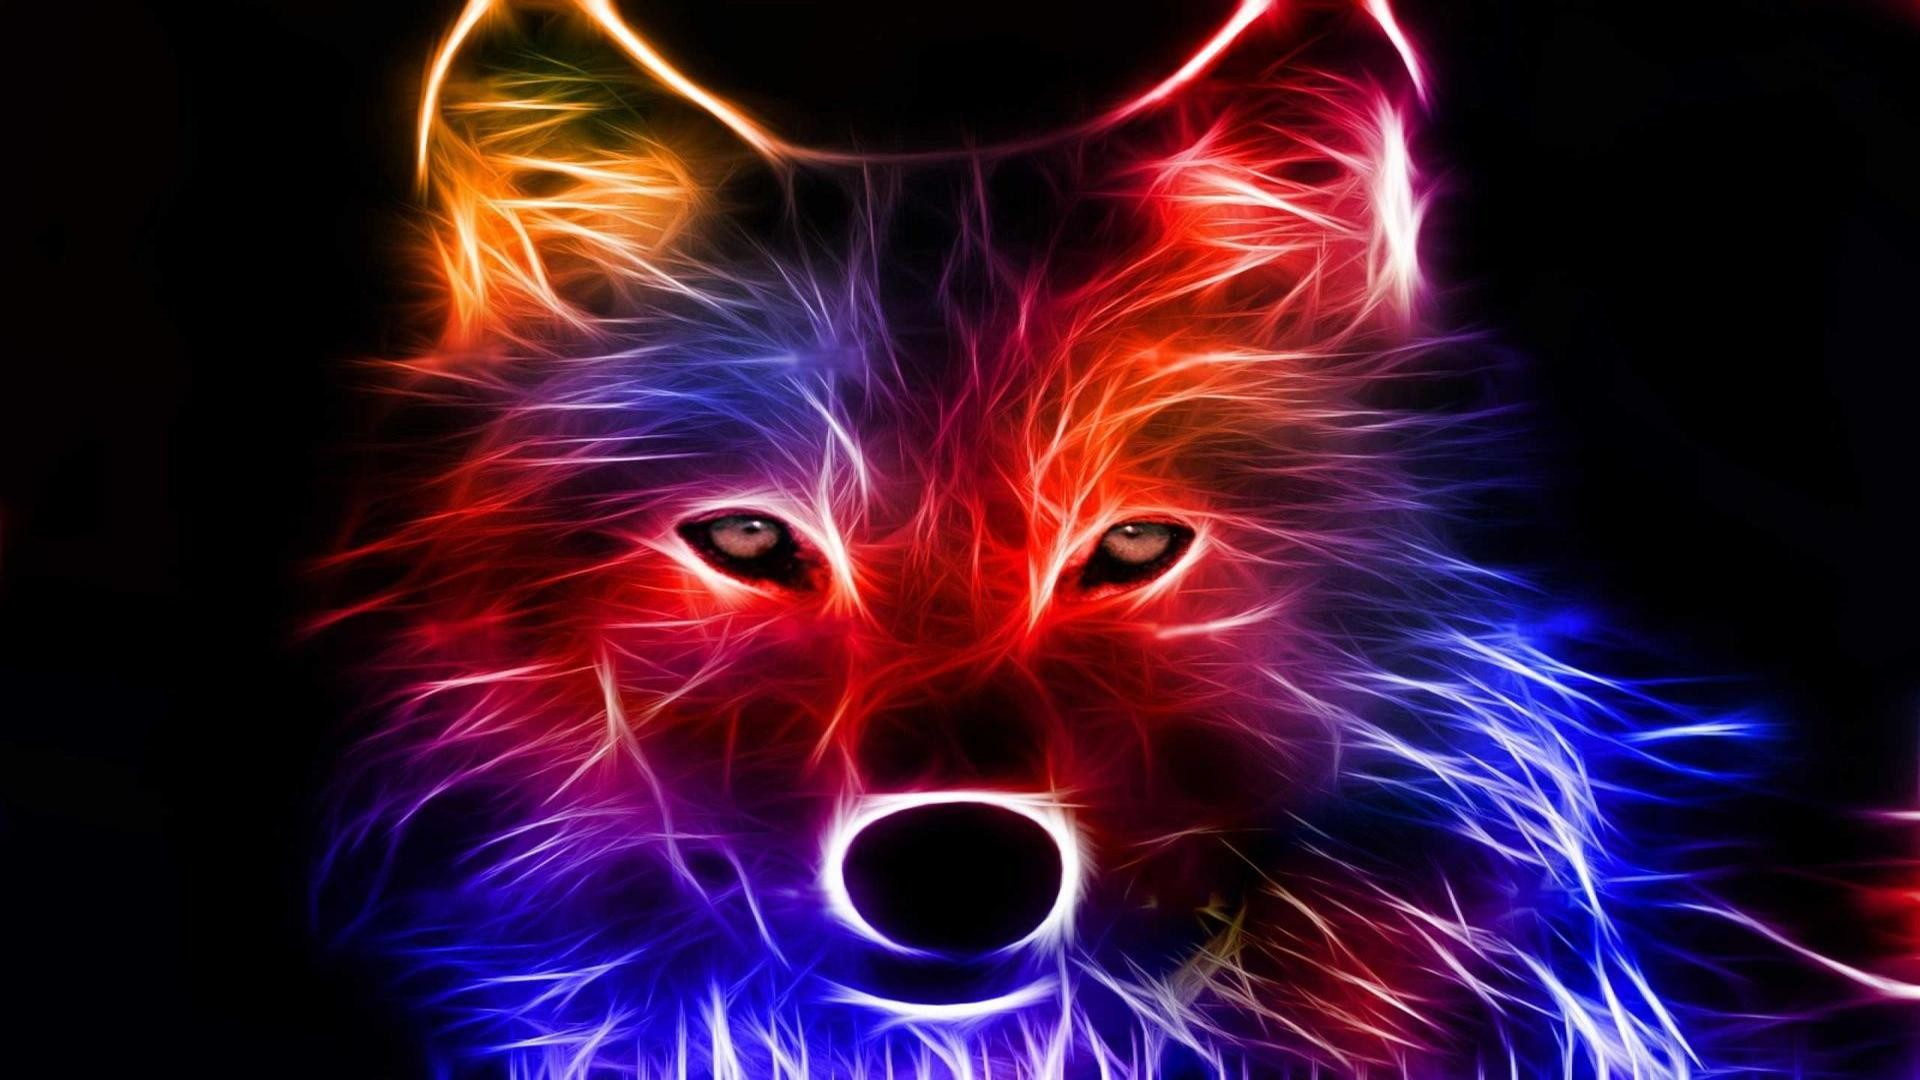 1920x1080 Sharp wolf (1920 x 1080) Need #iPhone #6S #Plus #Wallpaper/ #Background for  #IPhone6SPlus? Follow iPhone 6S Plus 3Wallpapers/ #Backgrounds Must to …